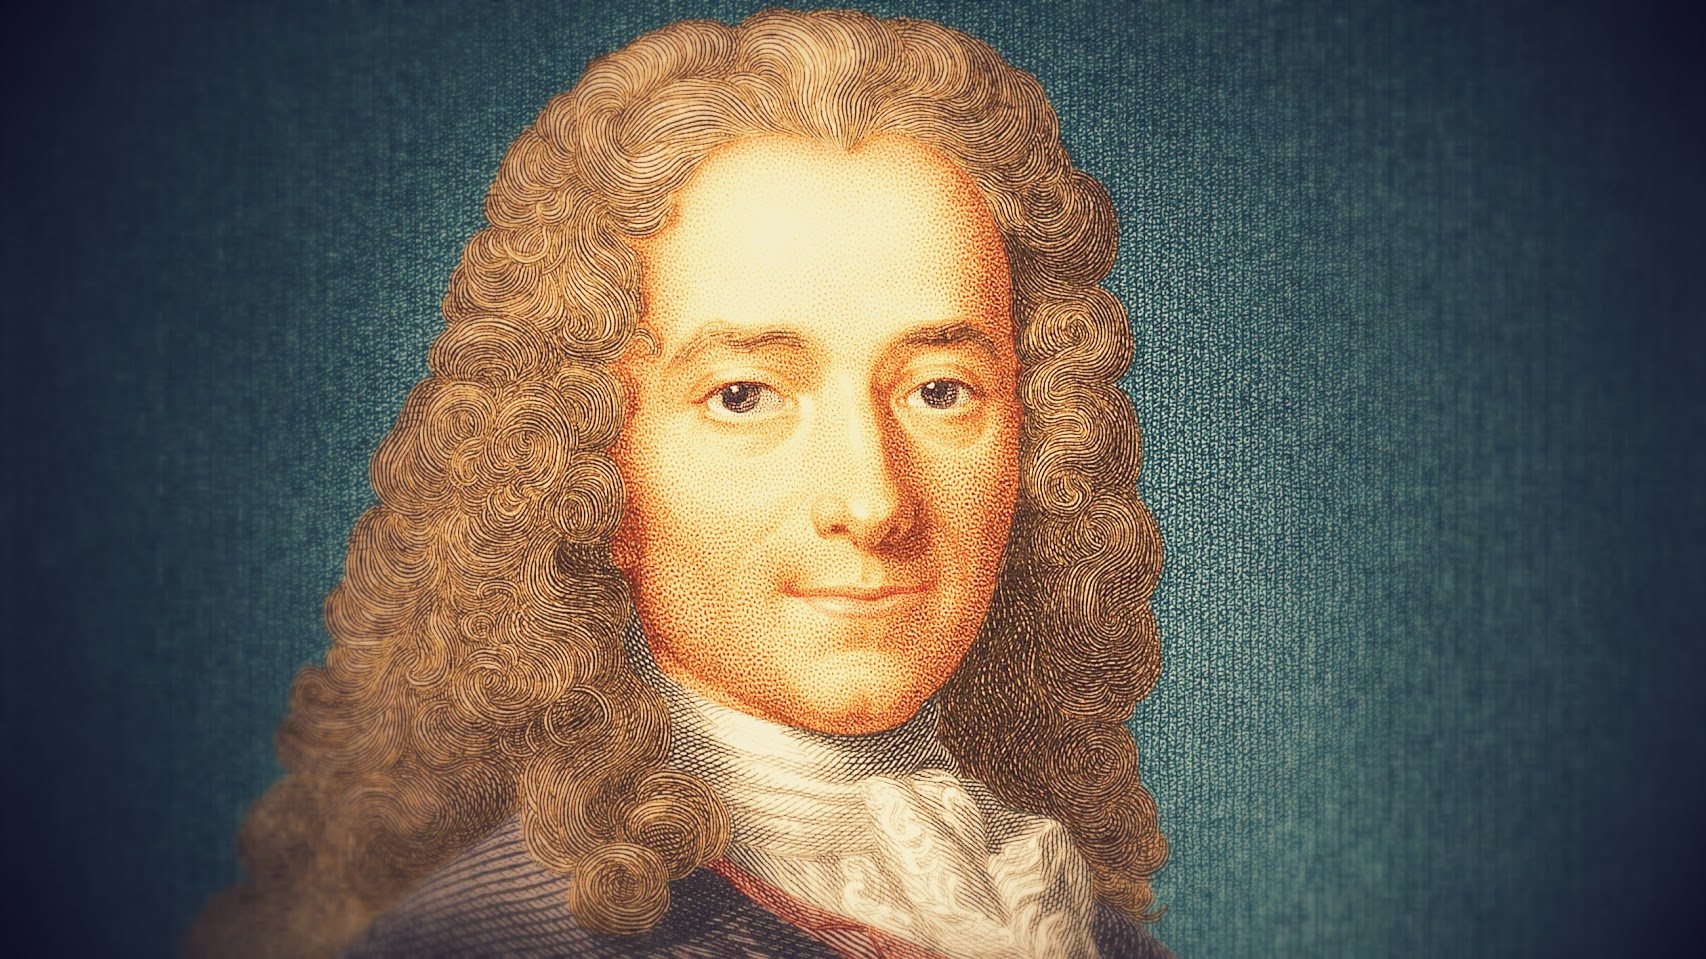 About Voltaire